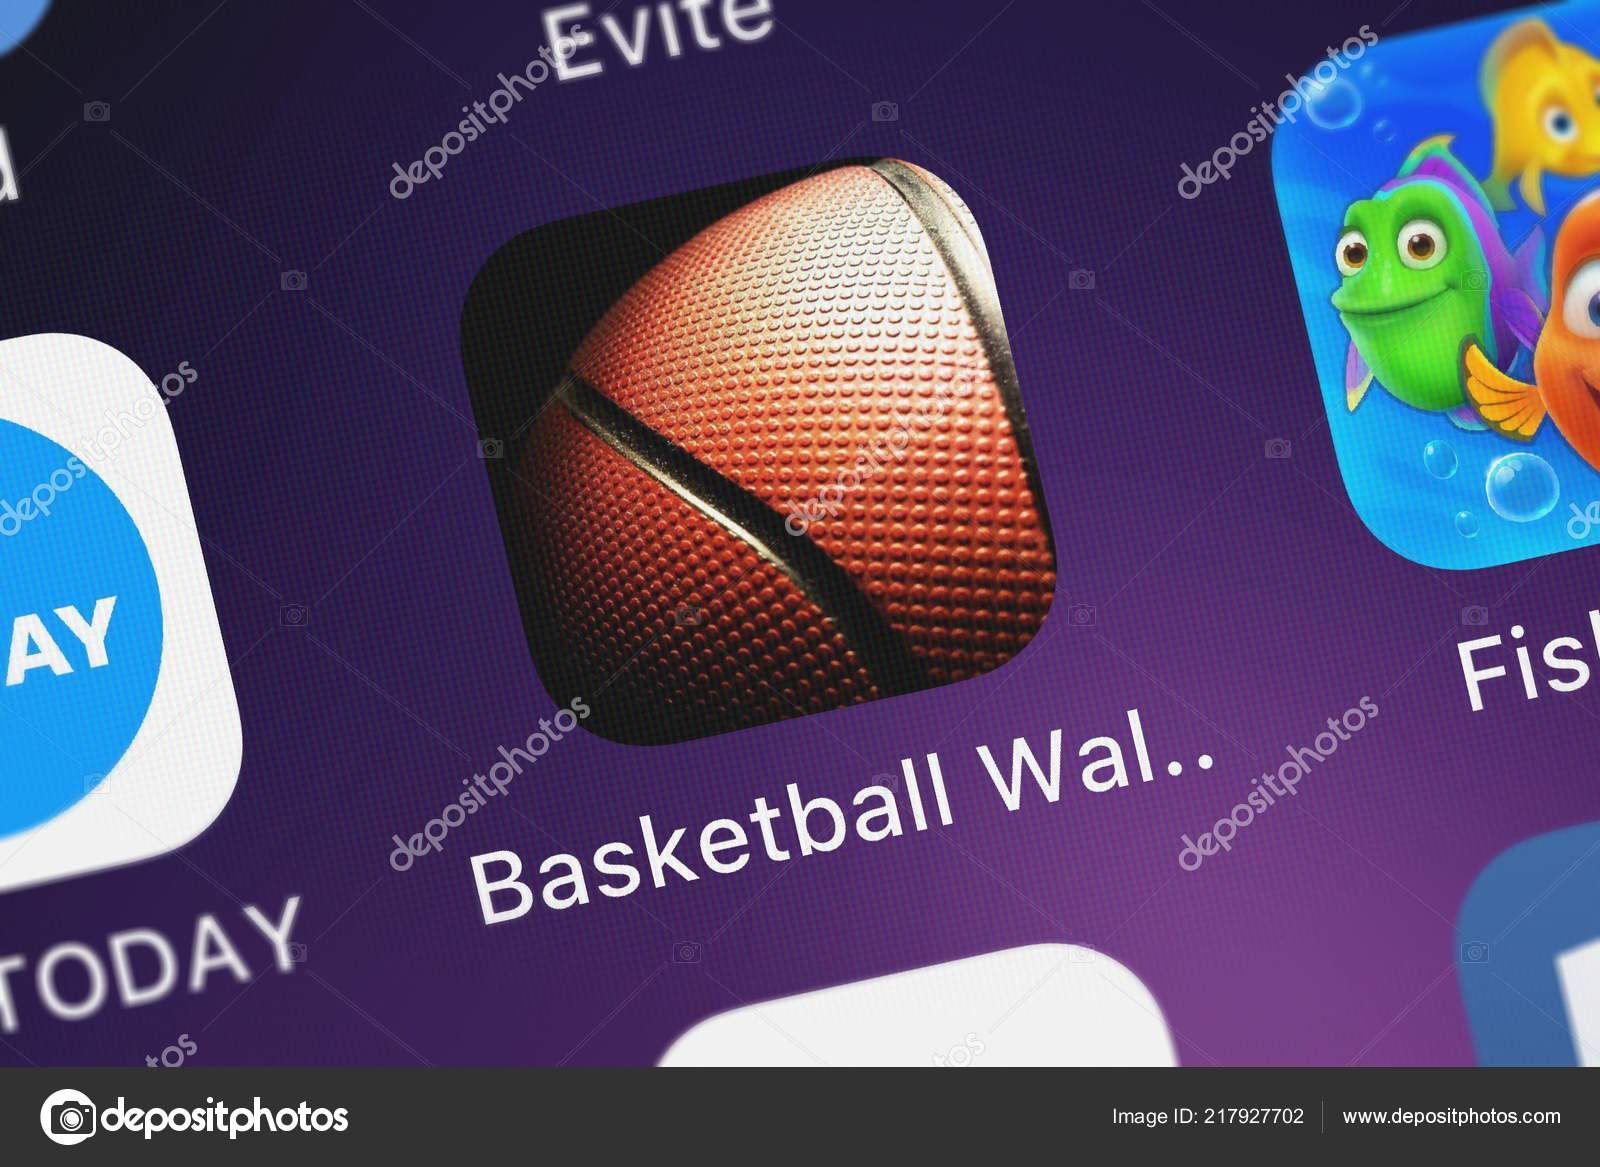 Wallpapers Cool Basketball For Iphone London United Kingdom October 2018 Screenshot Mobile App Basketball Wallpapers Stock Editorial Photo C Opturadesign 217927702